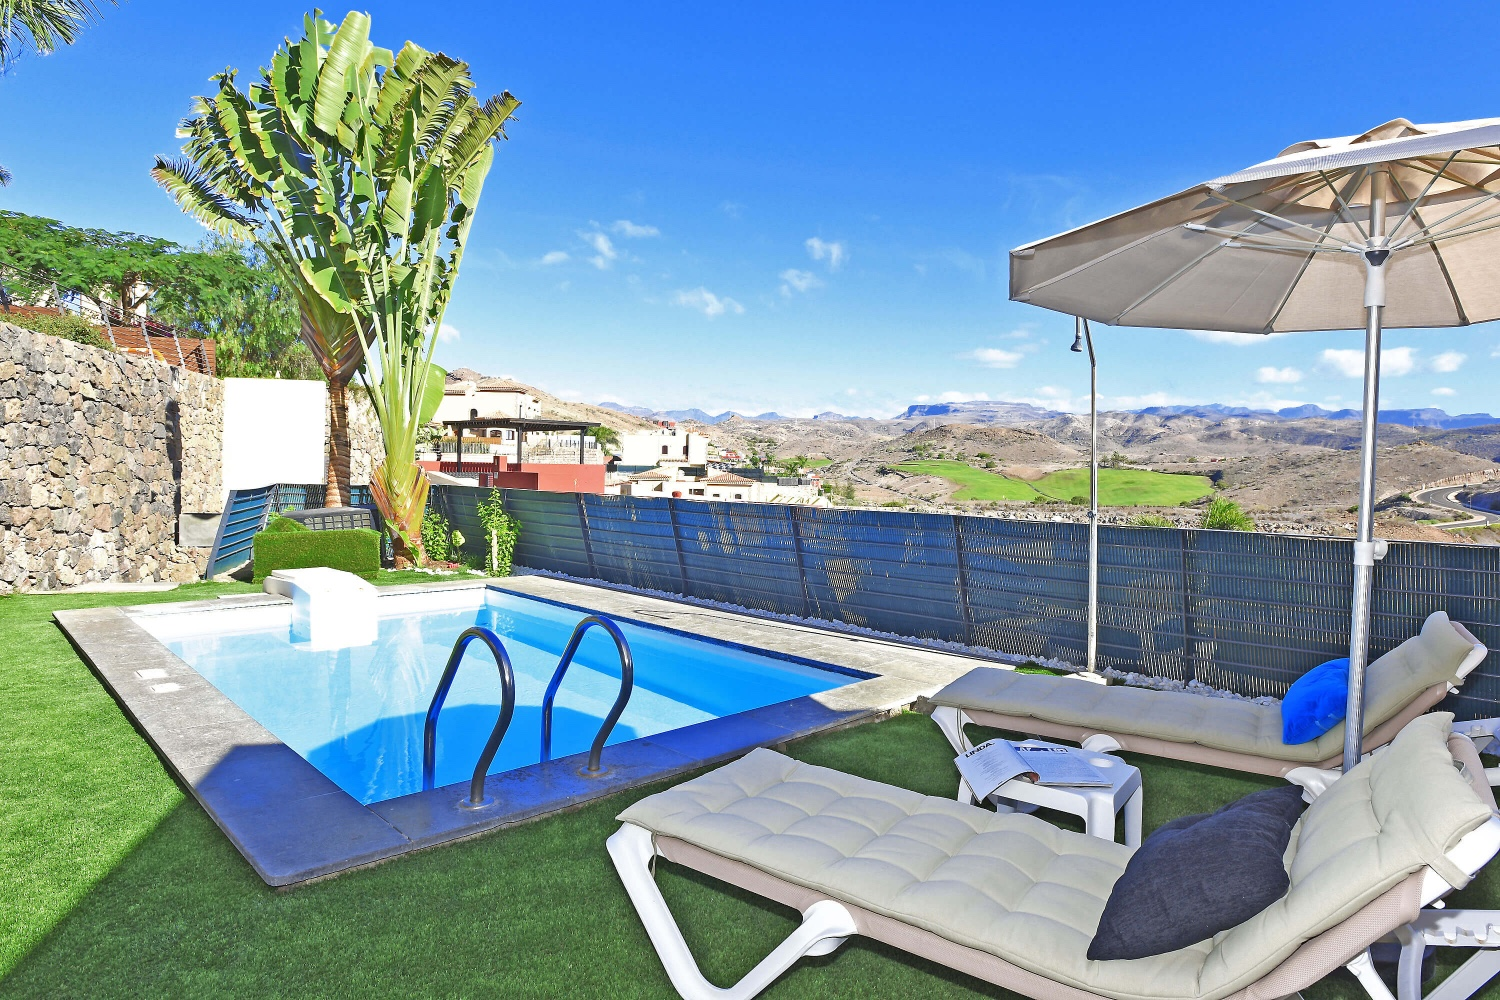 Stylish holiday home on one floor with private pool, garden and stunning views of countryside and golf course